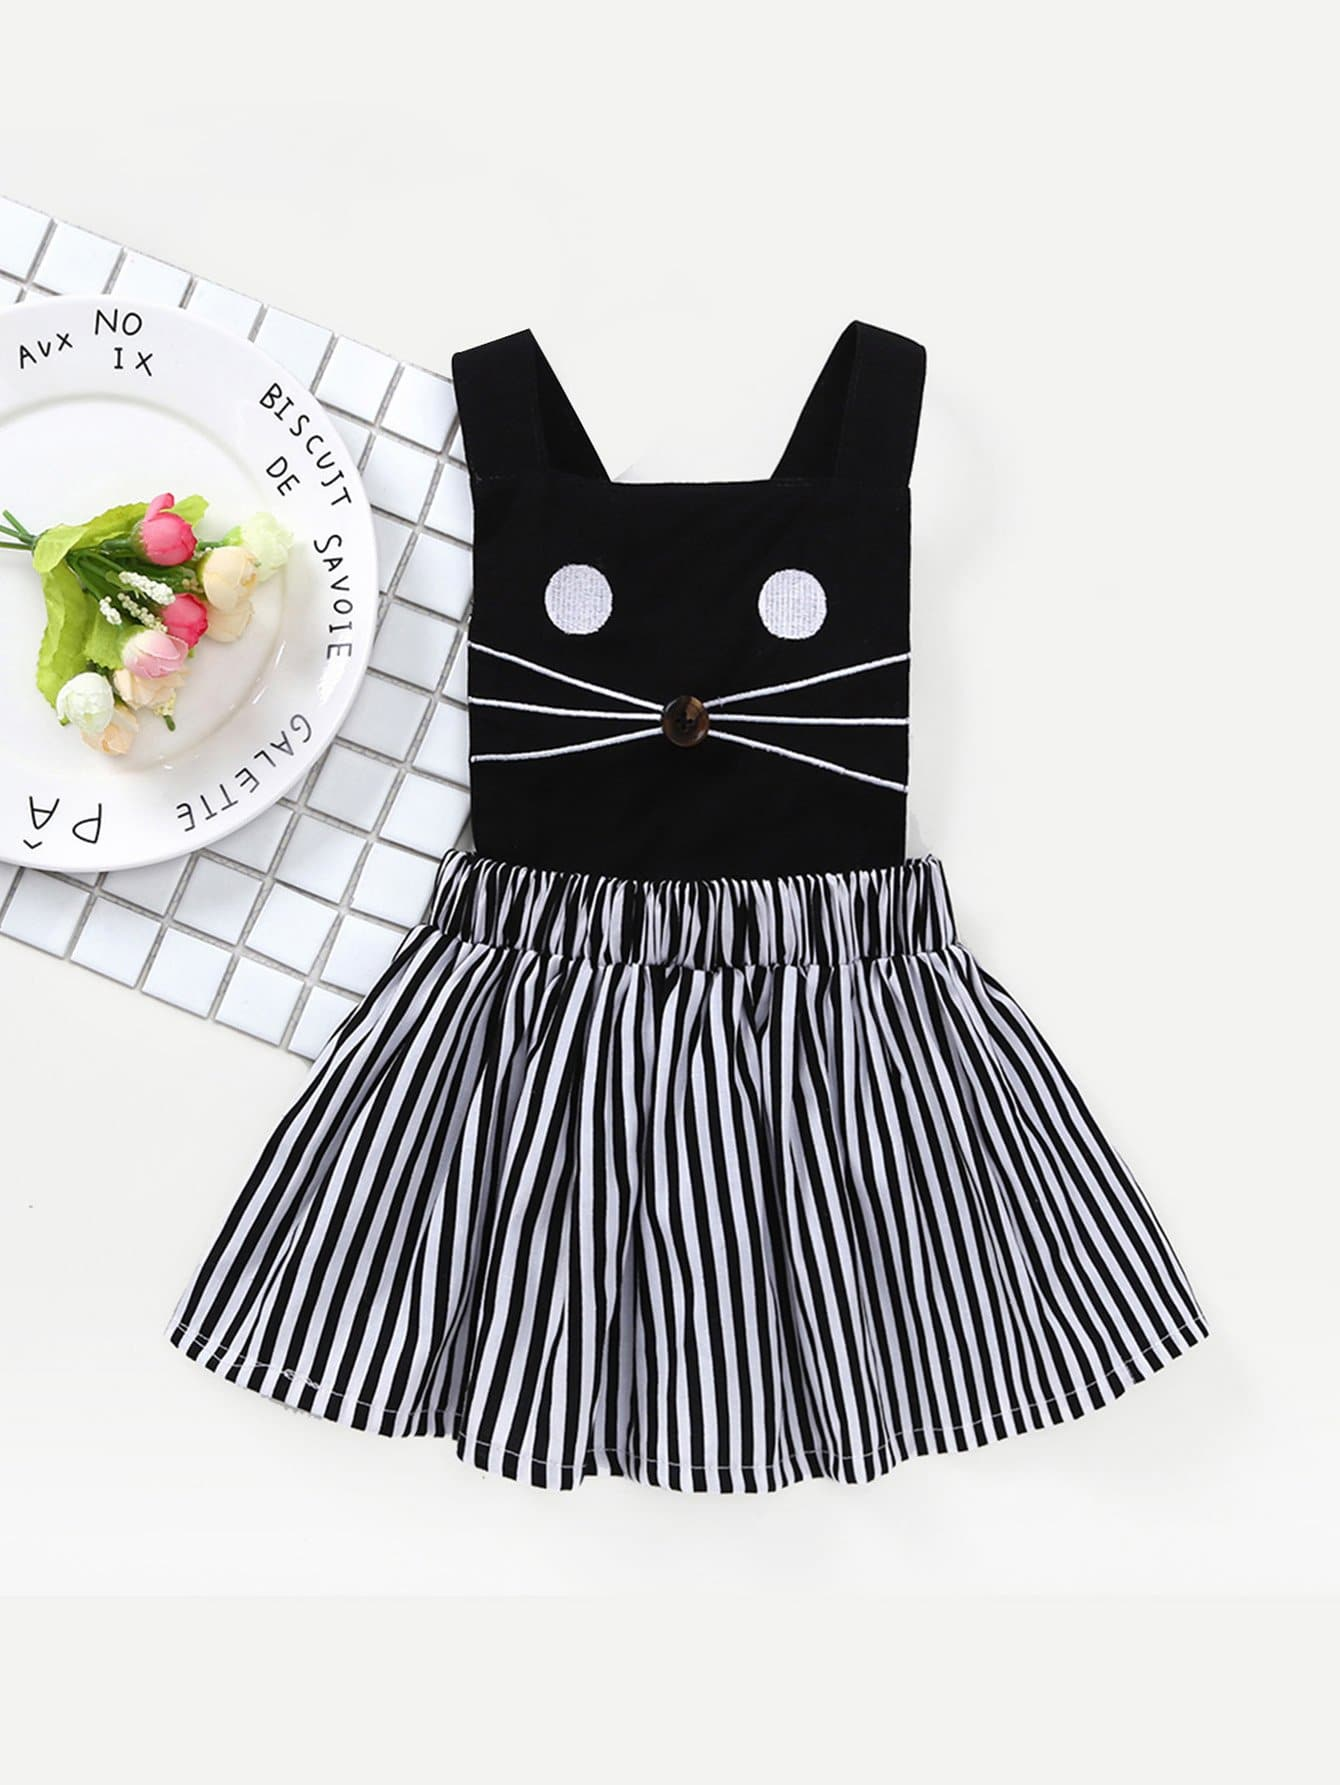 Kids Cat Embroidered Striped Dress waterproof touch keypad card reader for rfid access control system card reader with wg26 for home security f1688a